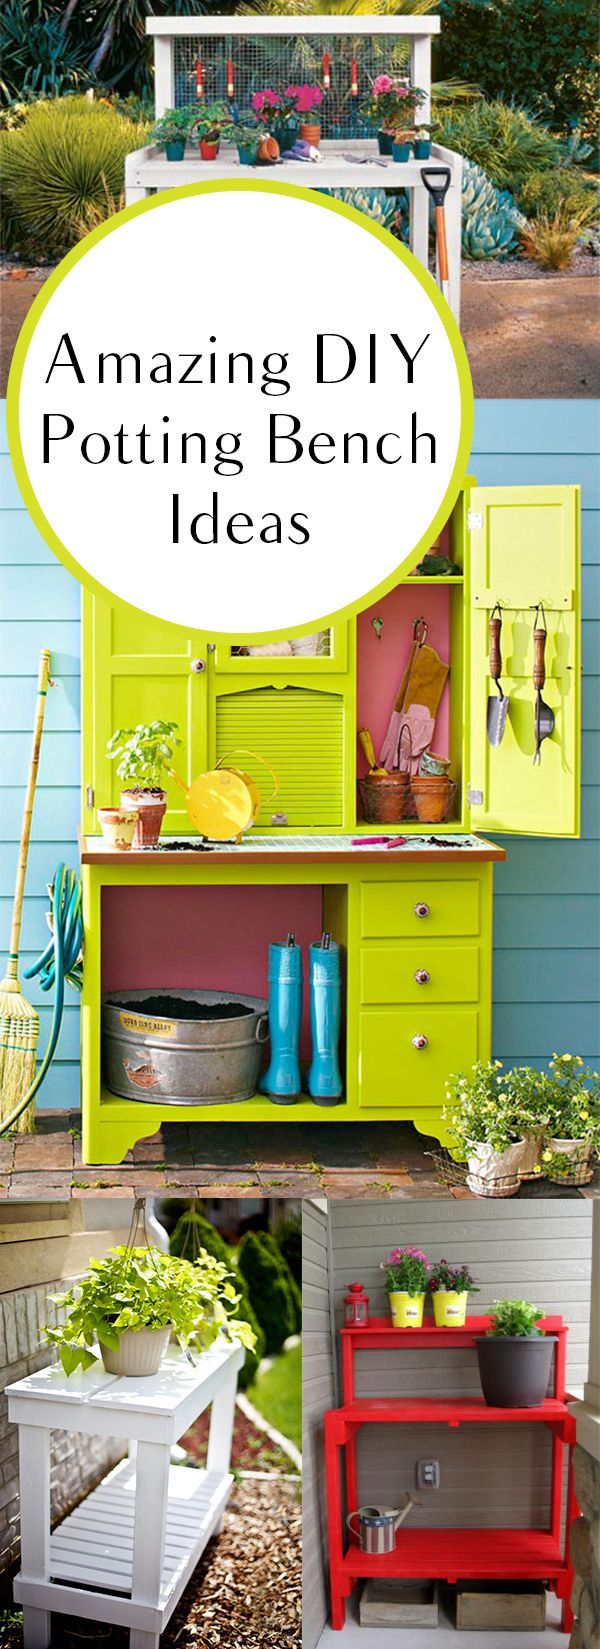 25 beautiful potting bench plans ideas on pinterest for Potting shed plans free